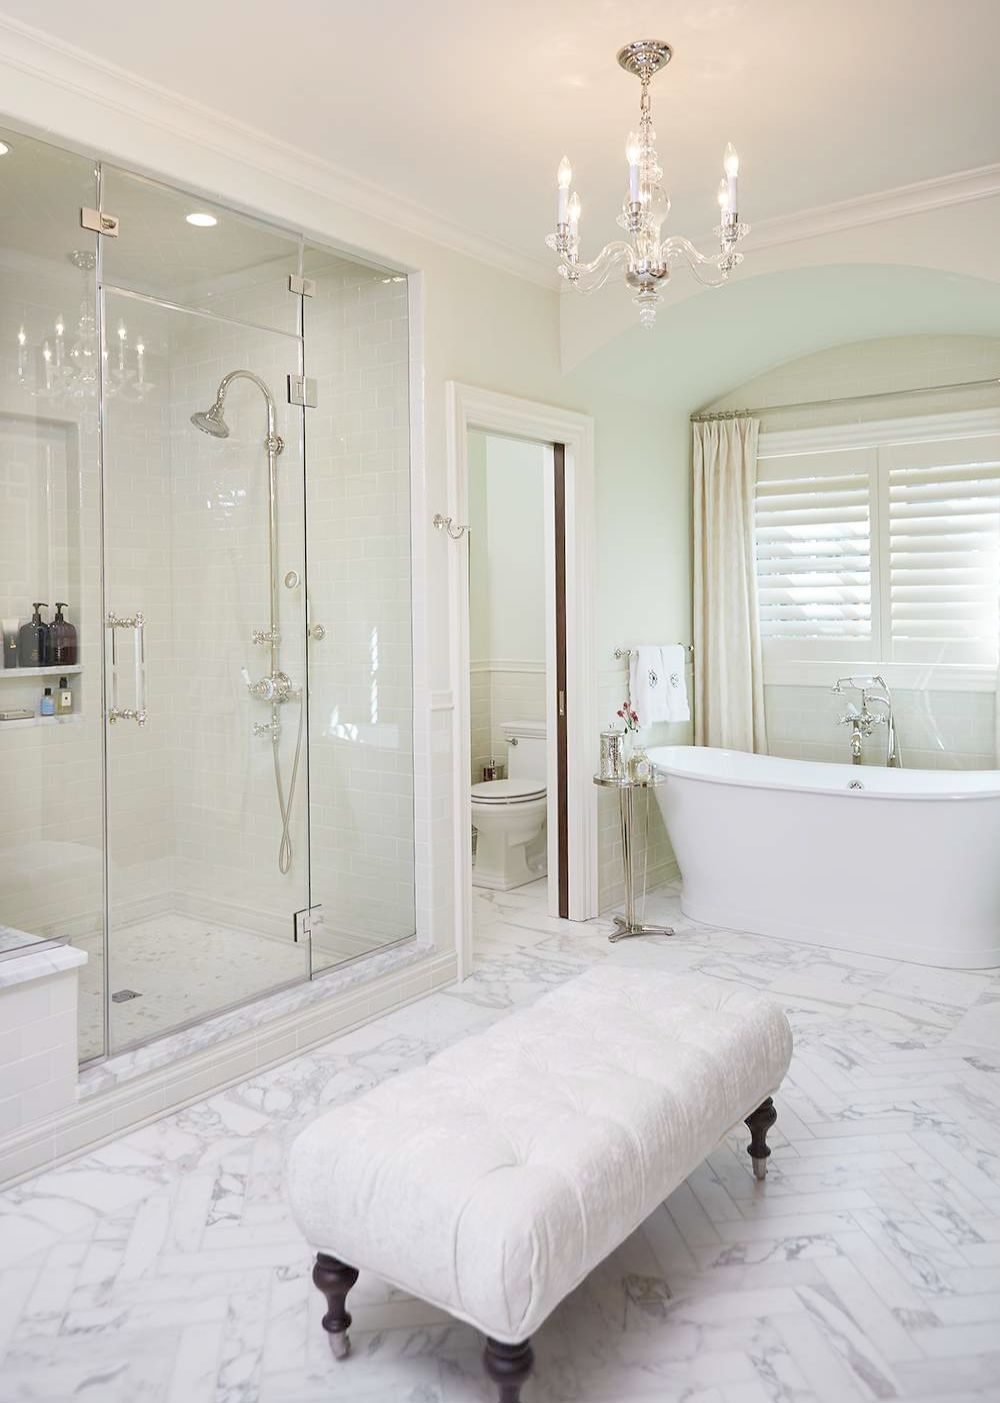 Luxury traditional bathroom design ideas for your classy room 51